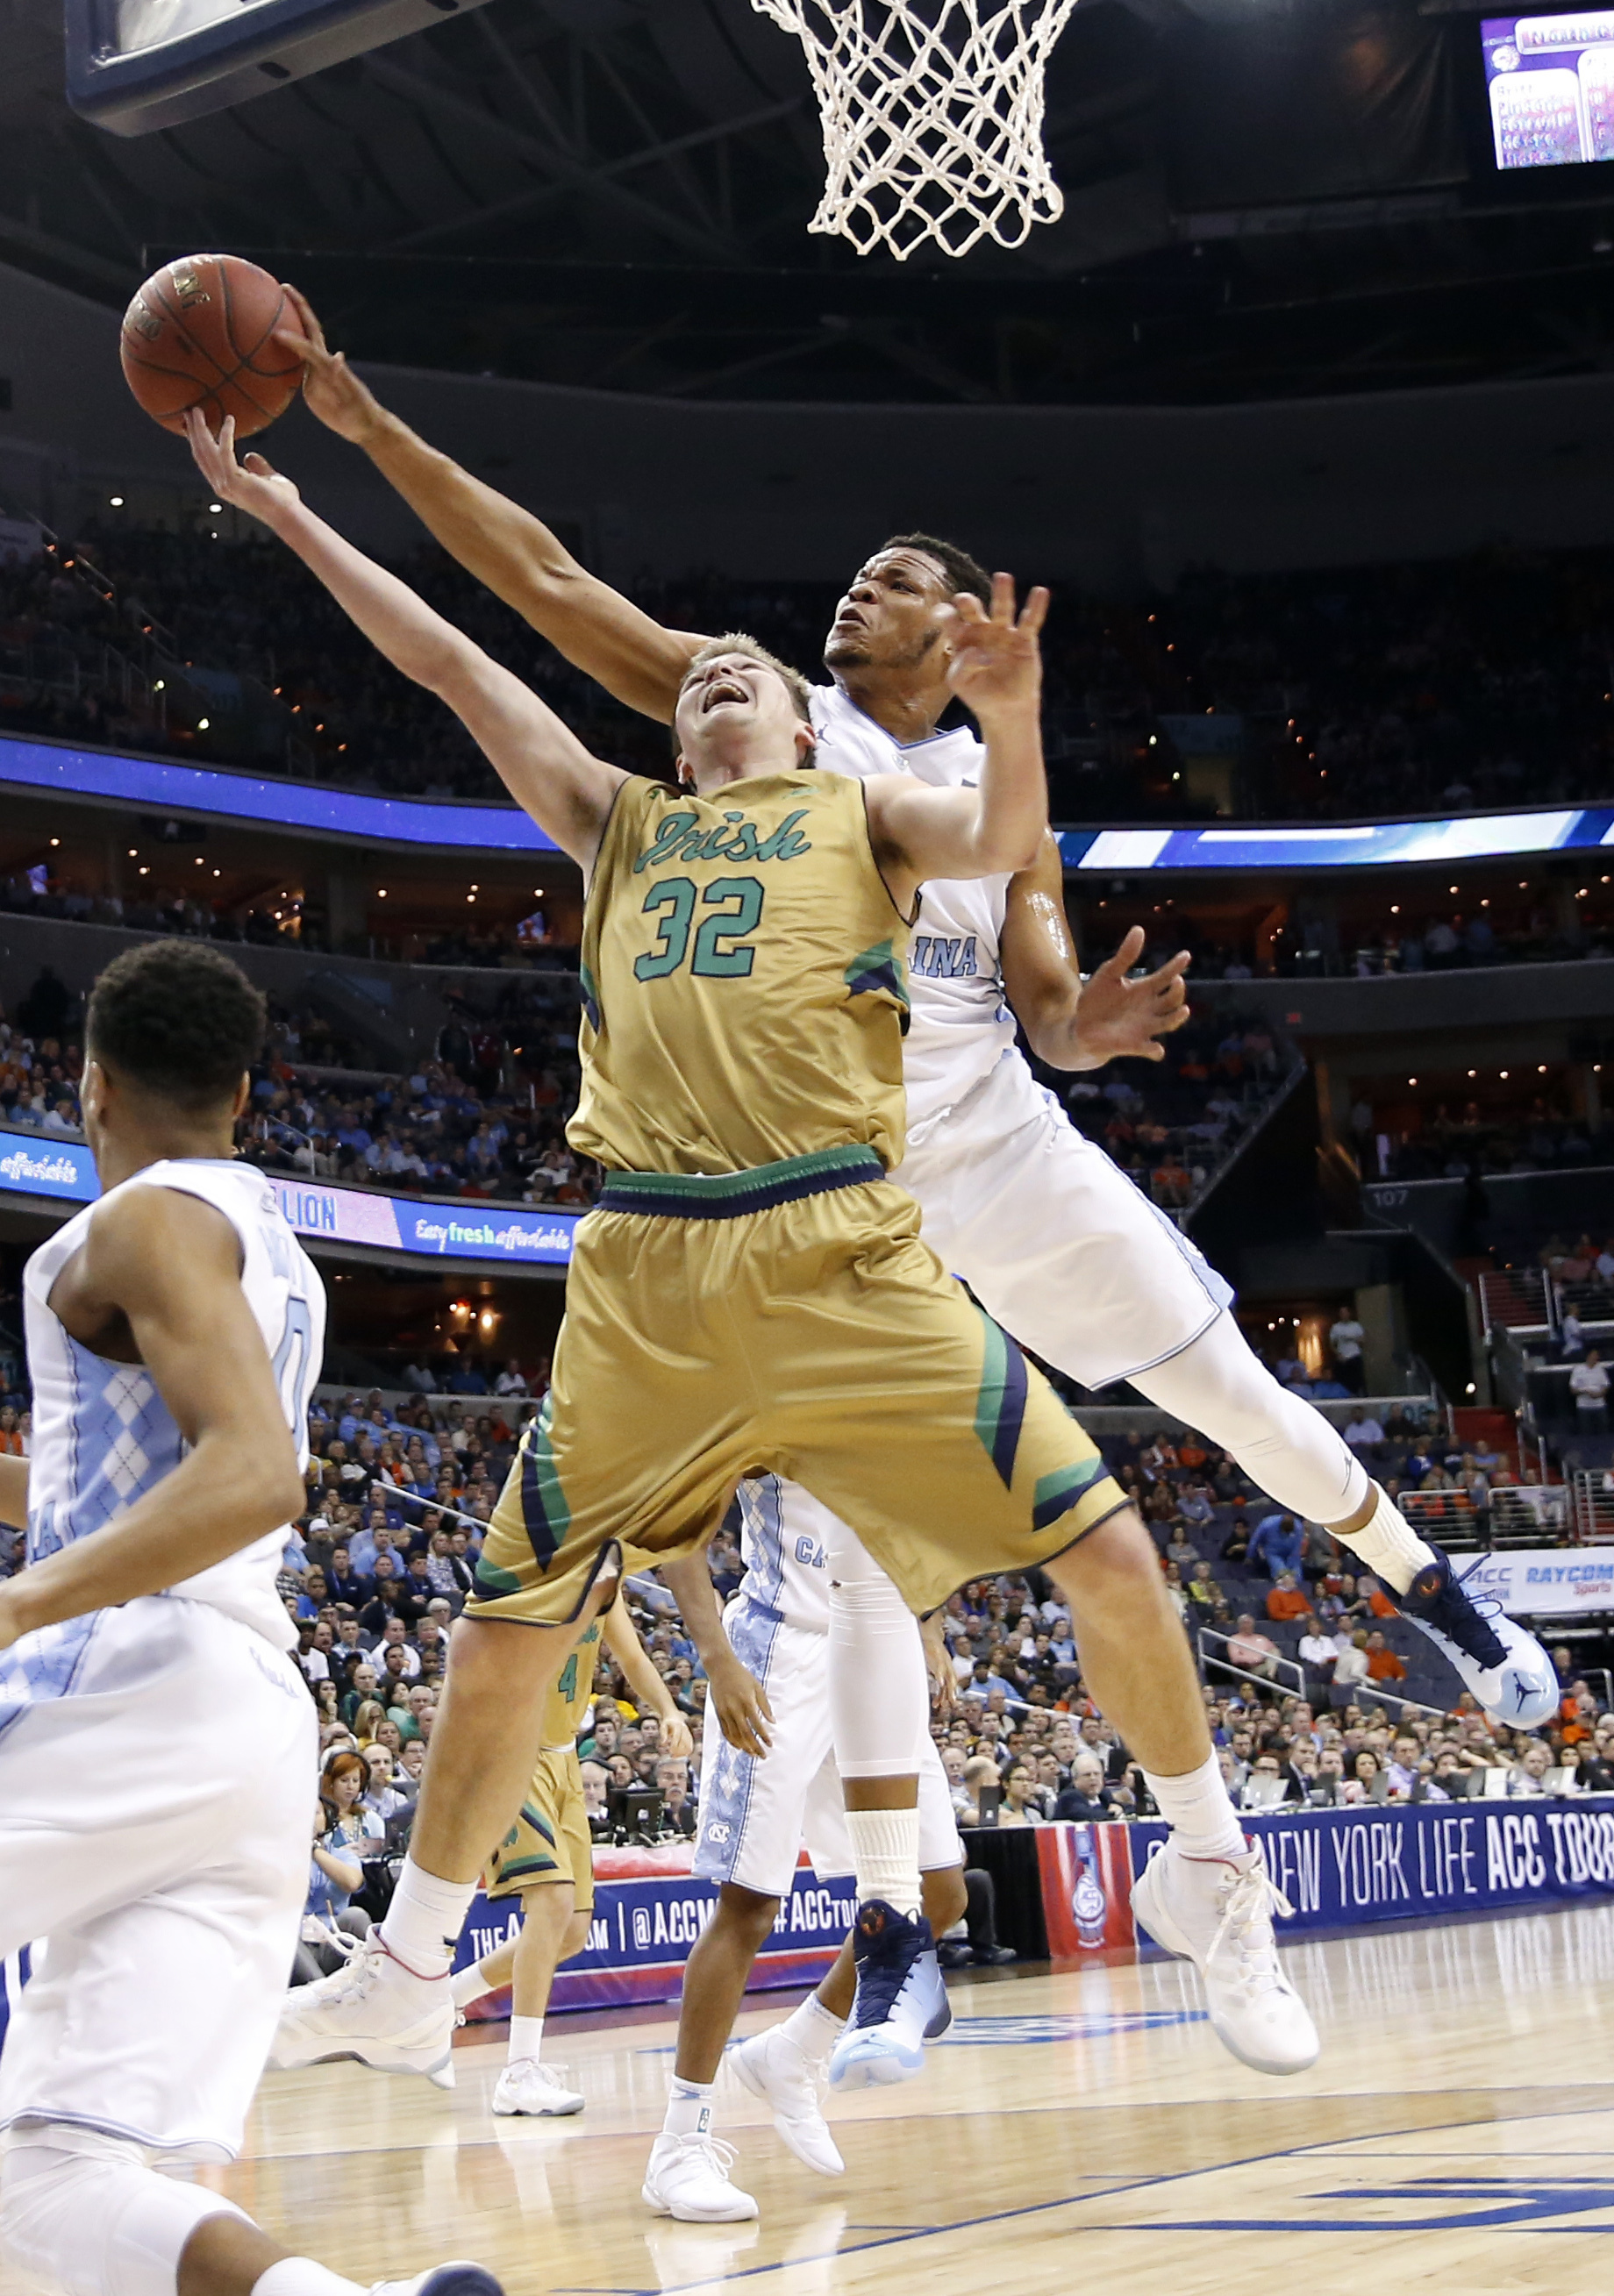 Notre Dame guard Steve Vasturia (32) has his shot blocked by North Carolina forward Kennedy Meeks (3) during the first half of an NCAA college basketball game in the Atlantic Coast Conference men's tournament, Friday, March 11, 2016, in Washington. (AP Ph